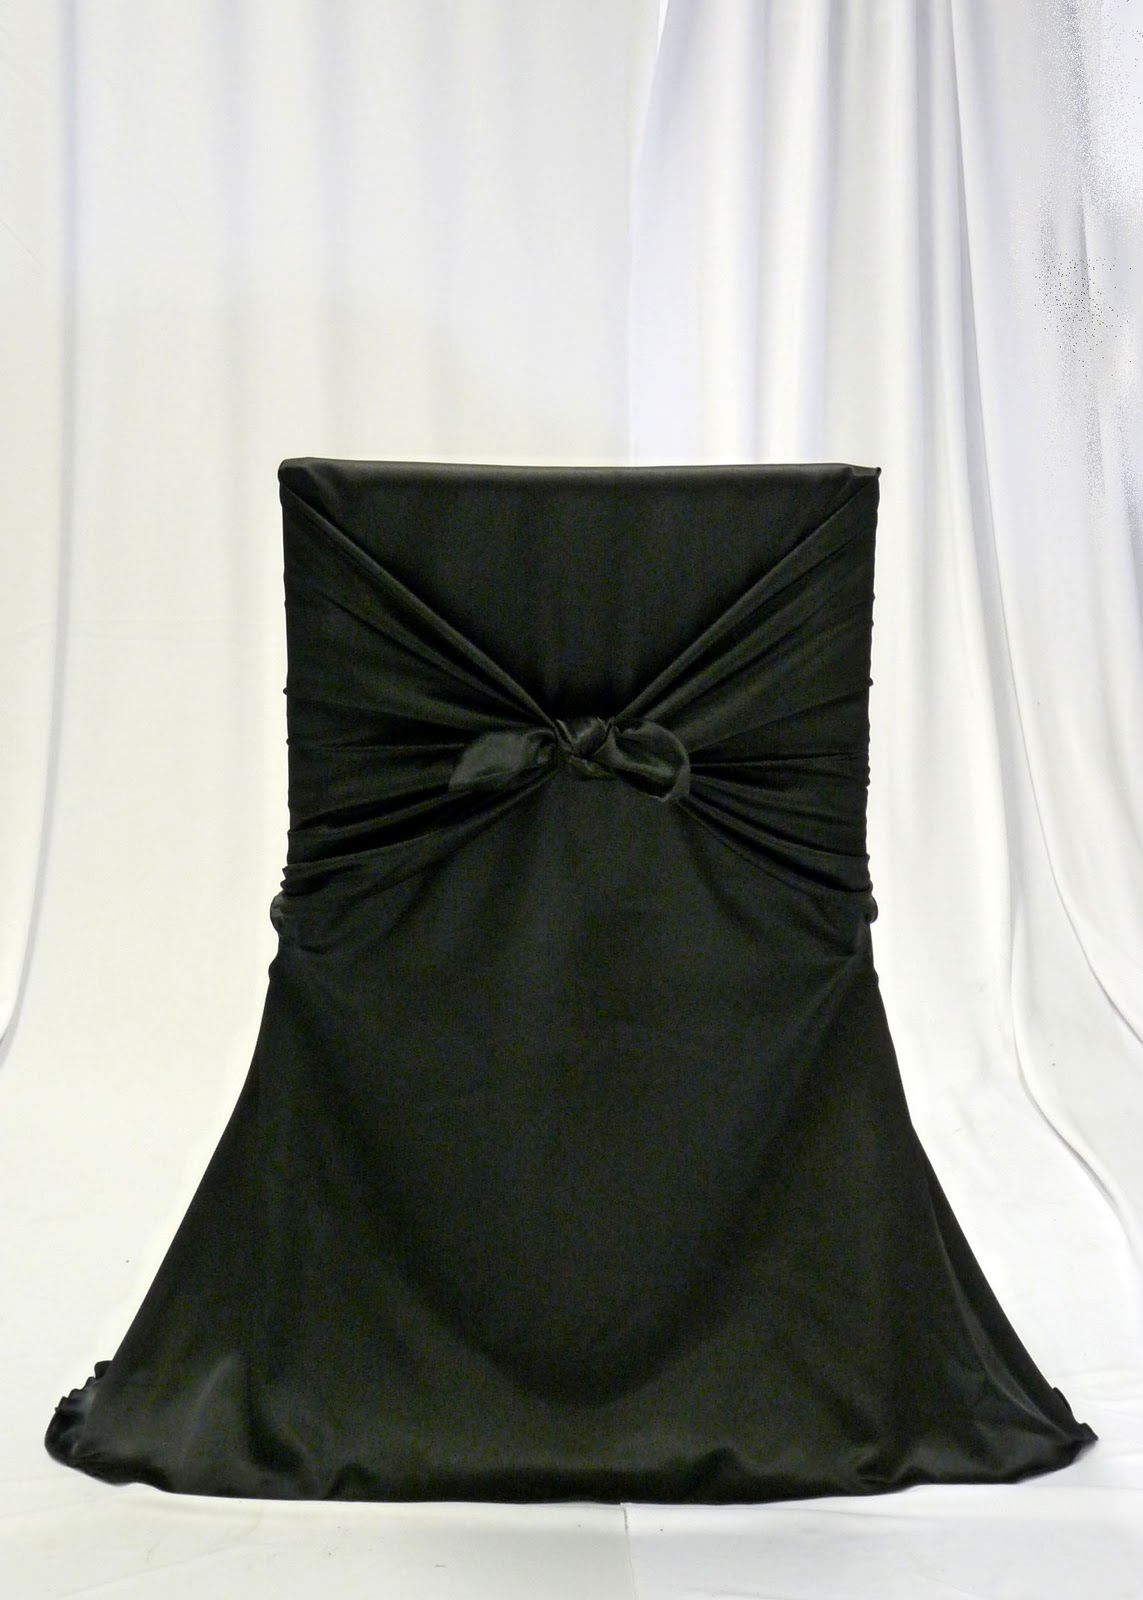 Chair Cover Rentals Decor Rent Rent Chair Covers Toronto Chair Cover